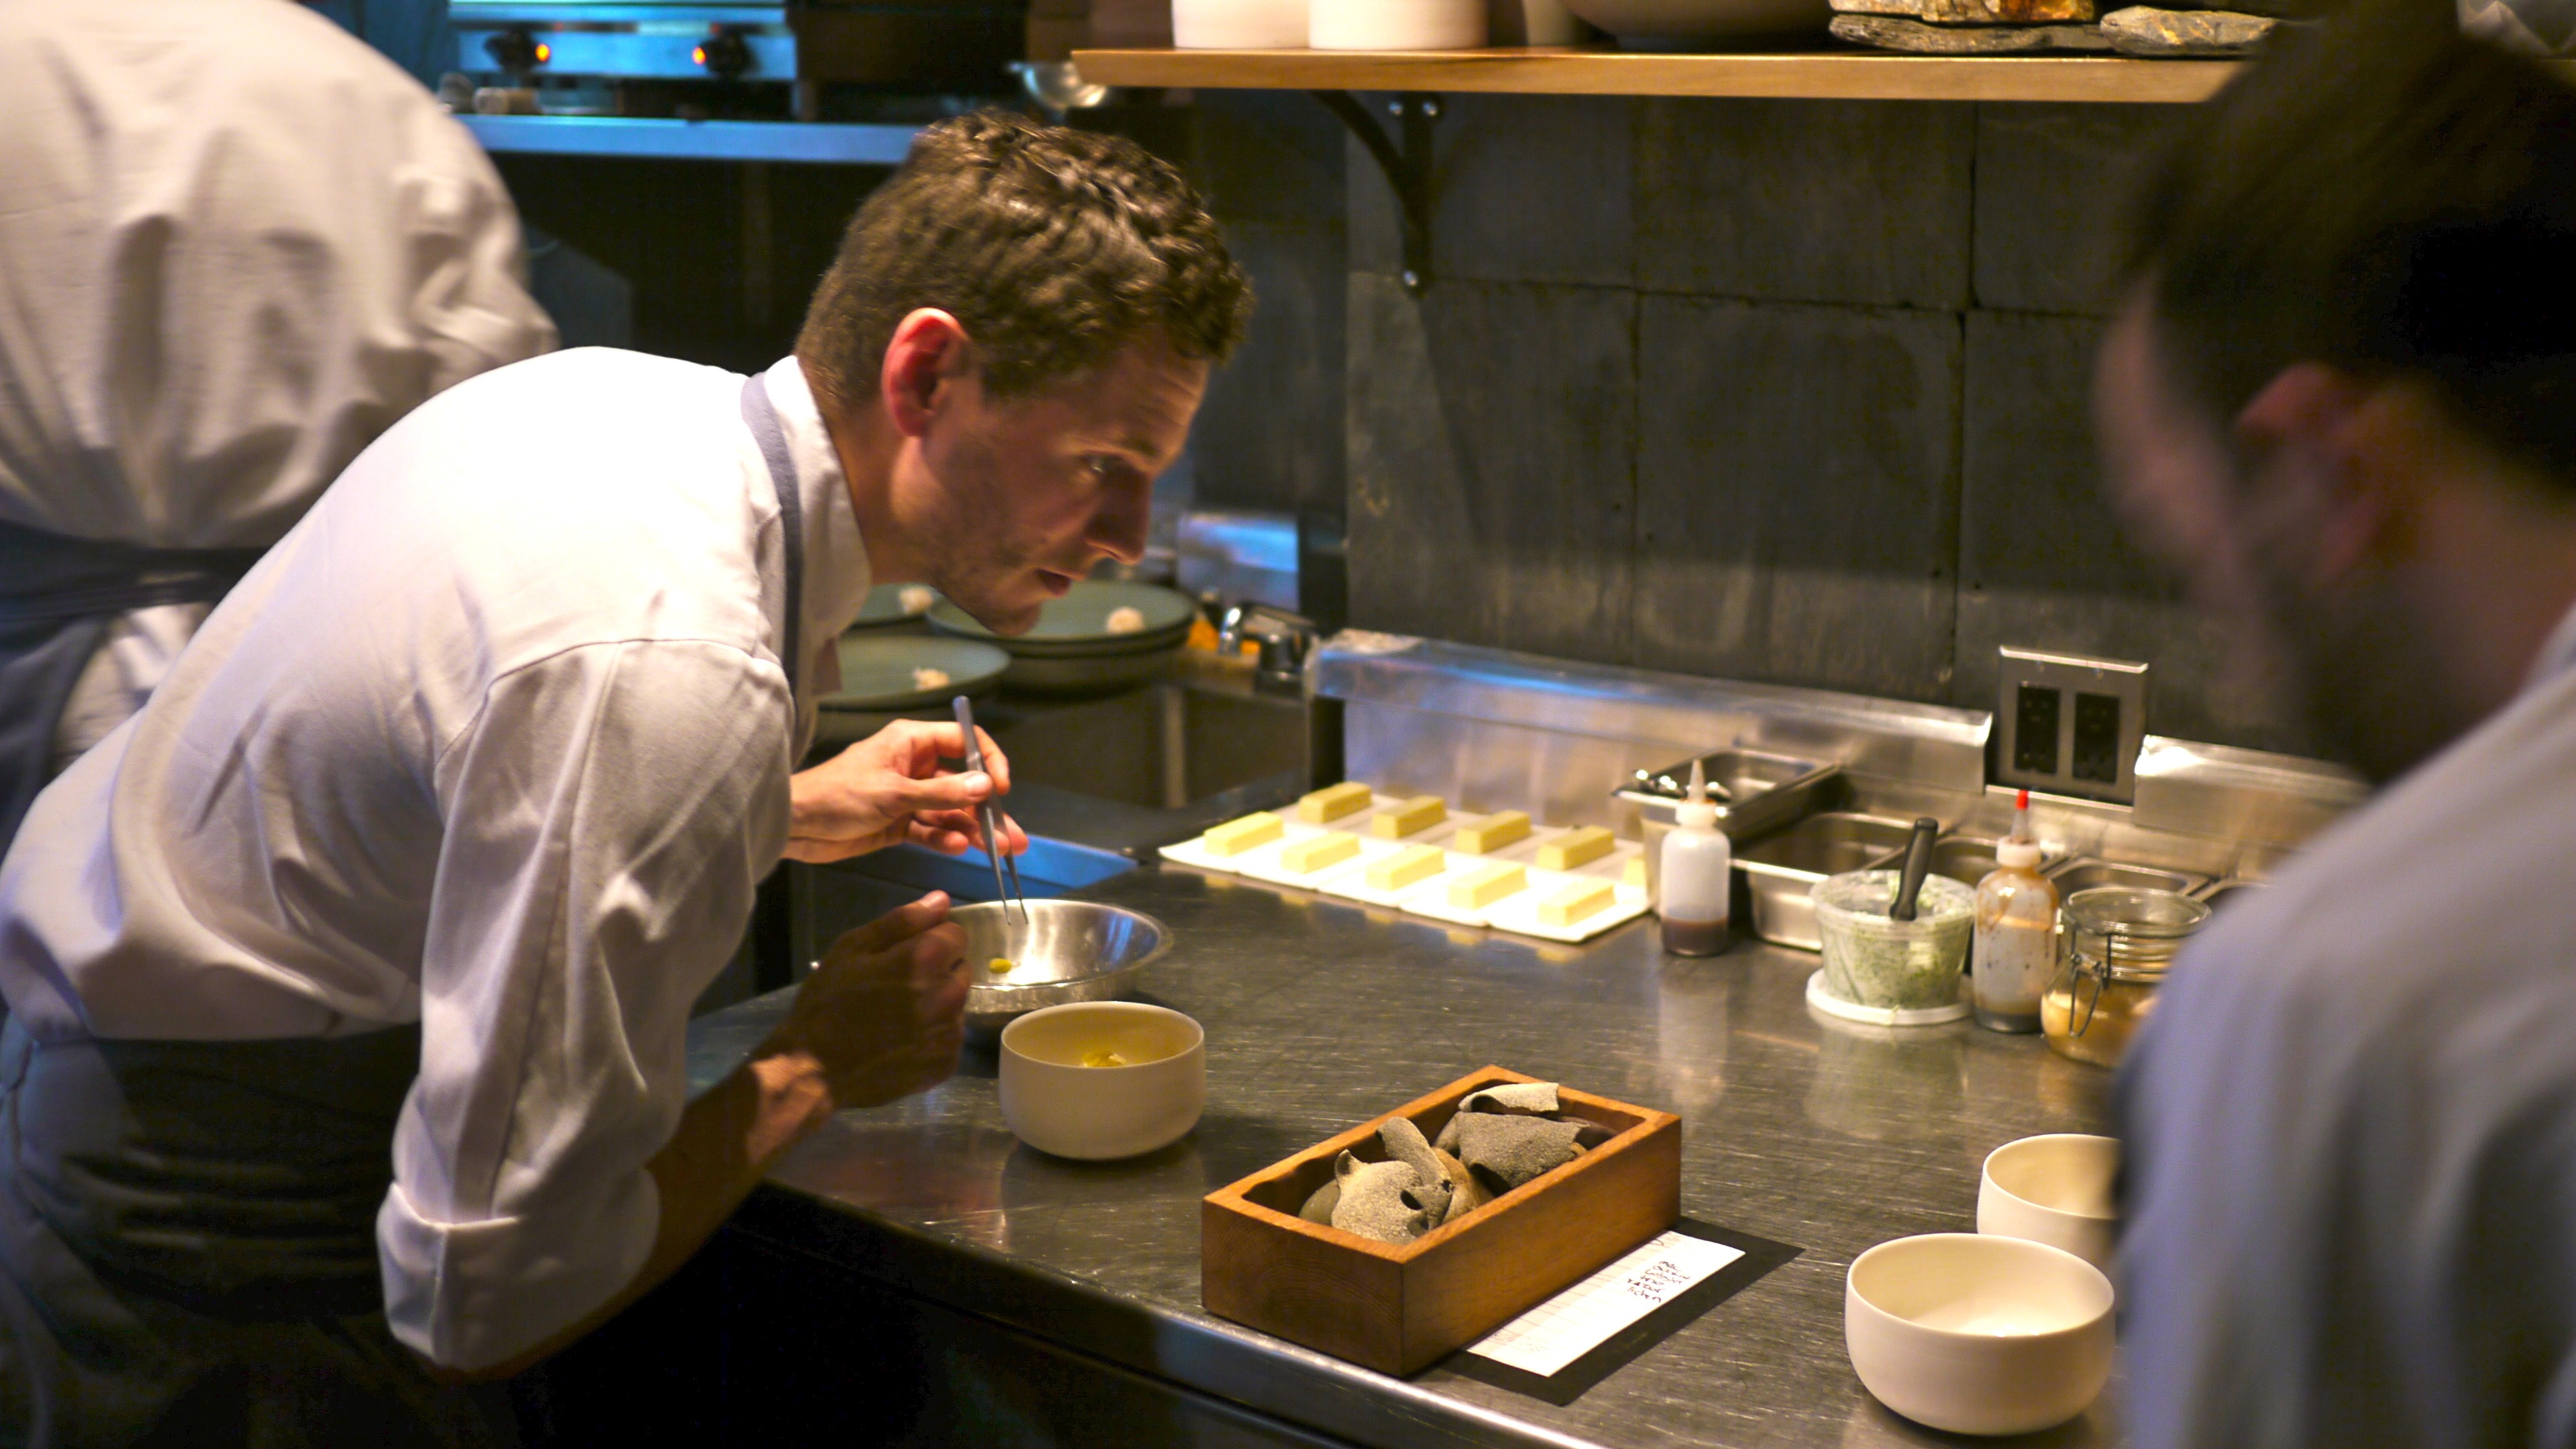 Jacob Nemmers, Atera cook, using tweezers to plate peeky-toe crab and artichokes.